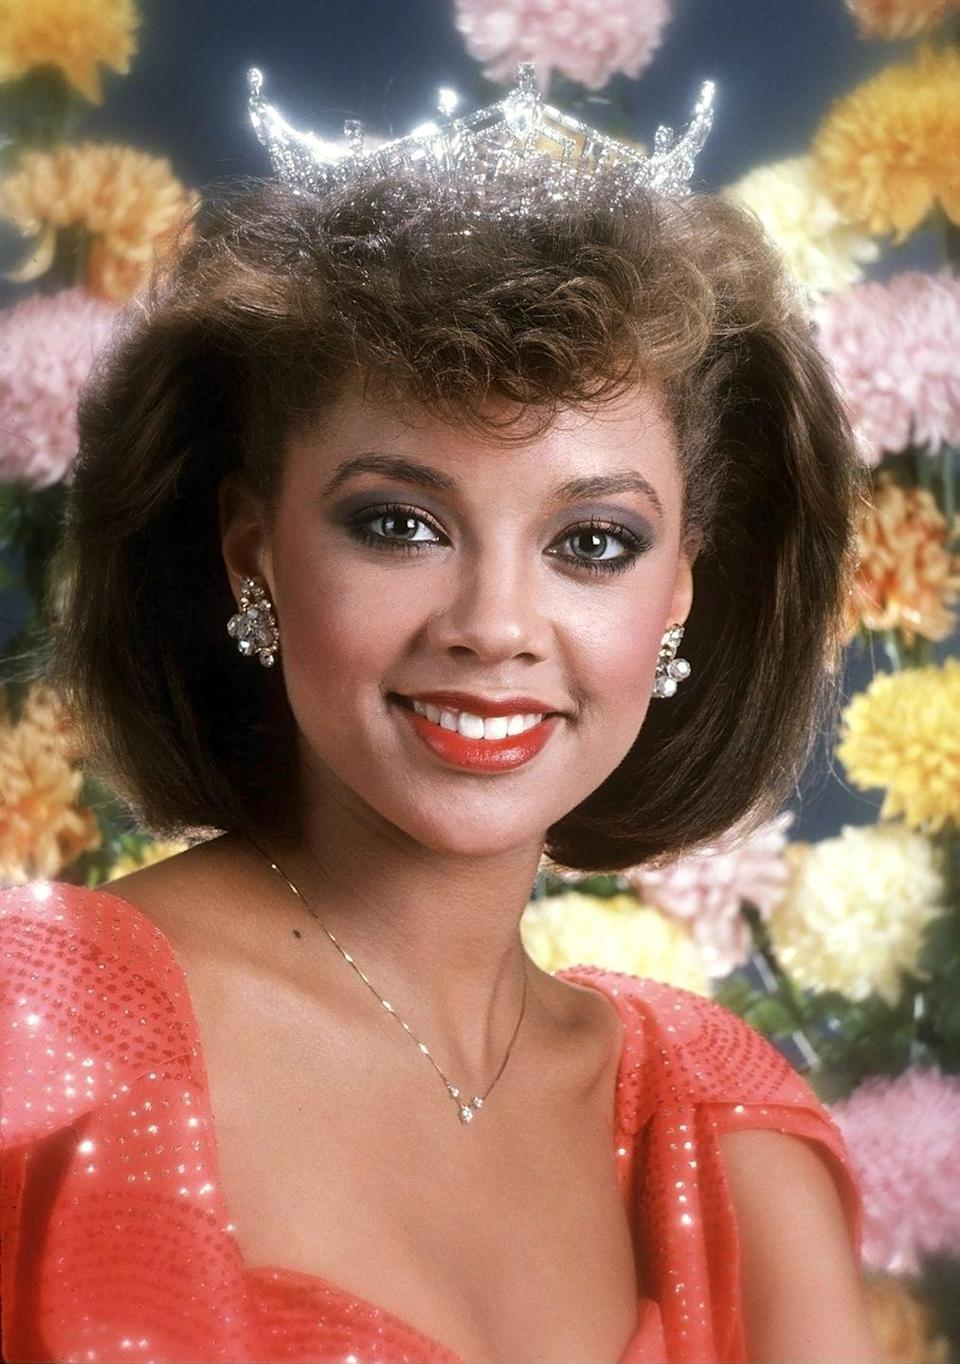 <p>Vanessa Williams was crowned Miss Syracuse and Miss New York in 1983, then took the title of Miss America 1984, making her the first Black Miss America.</p>